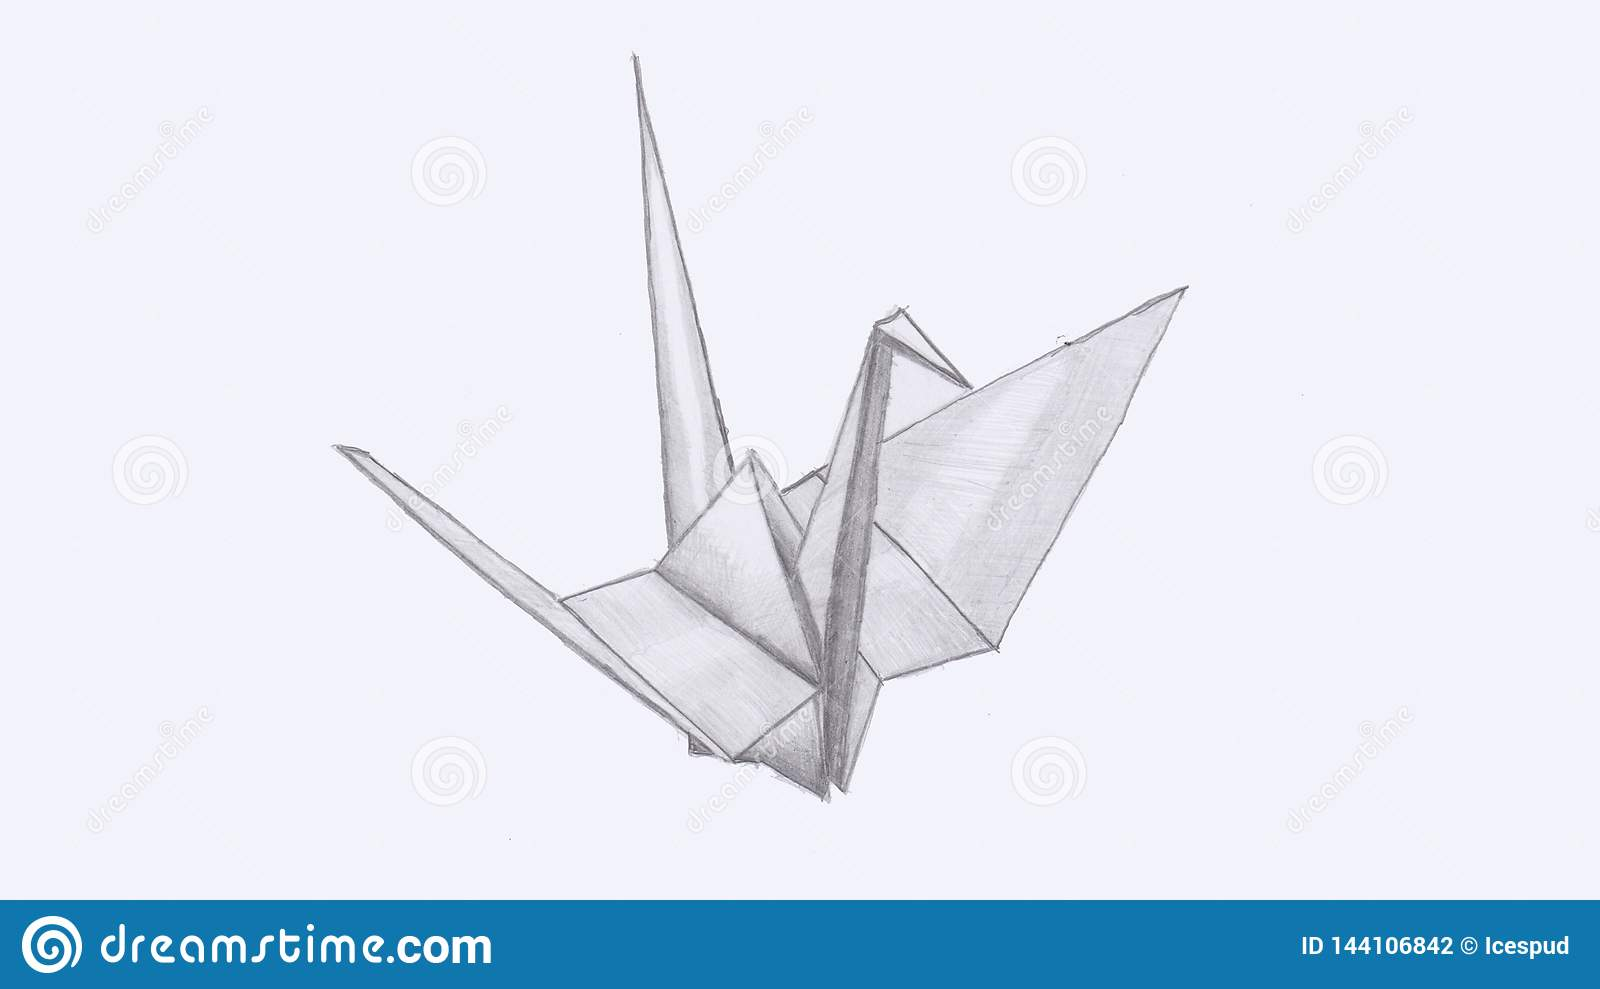 Hand draw of a origami crane